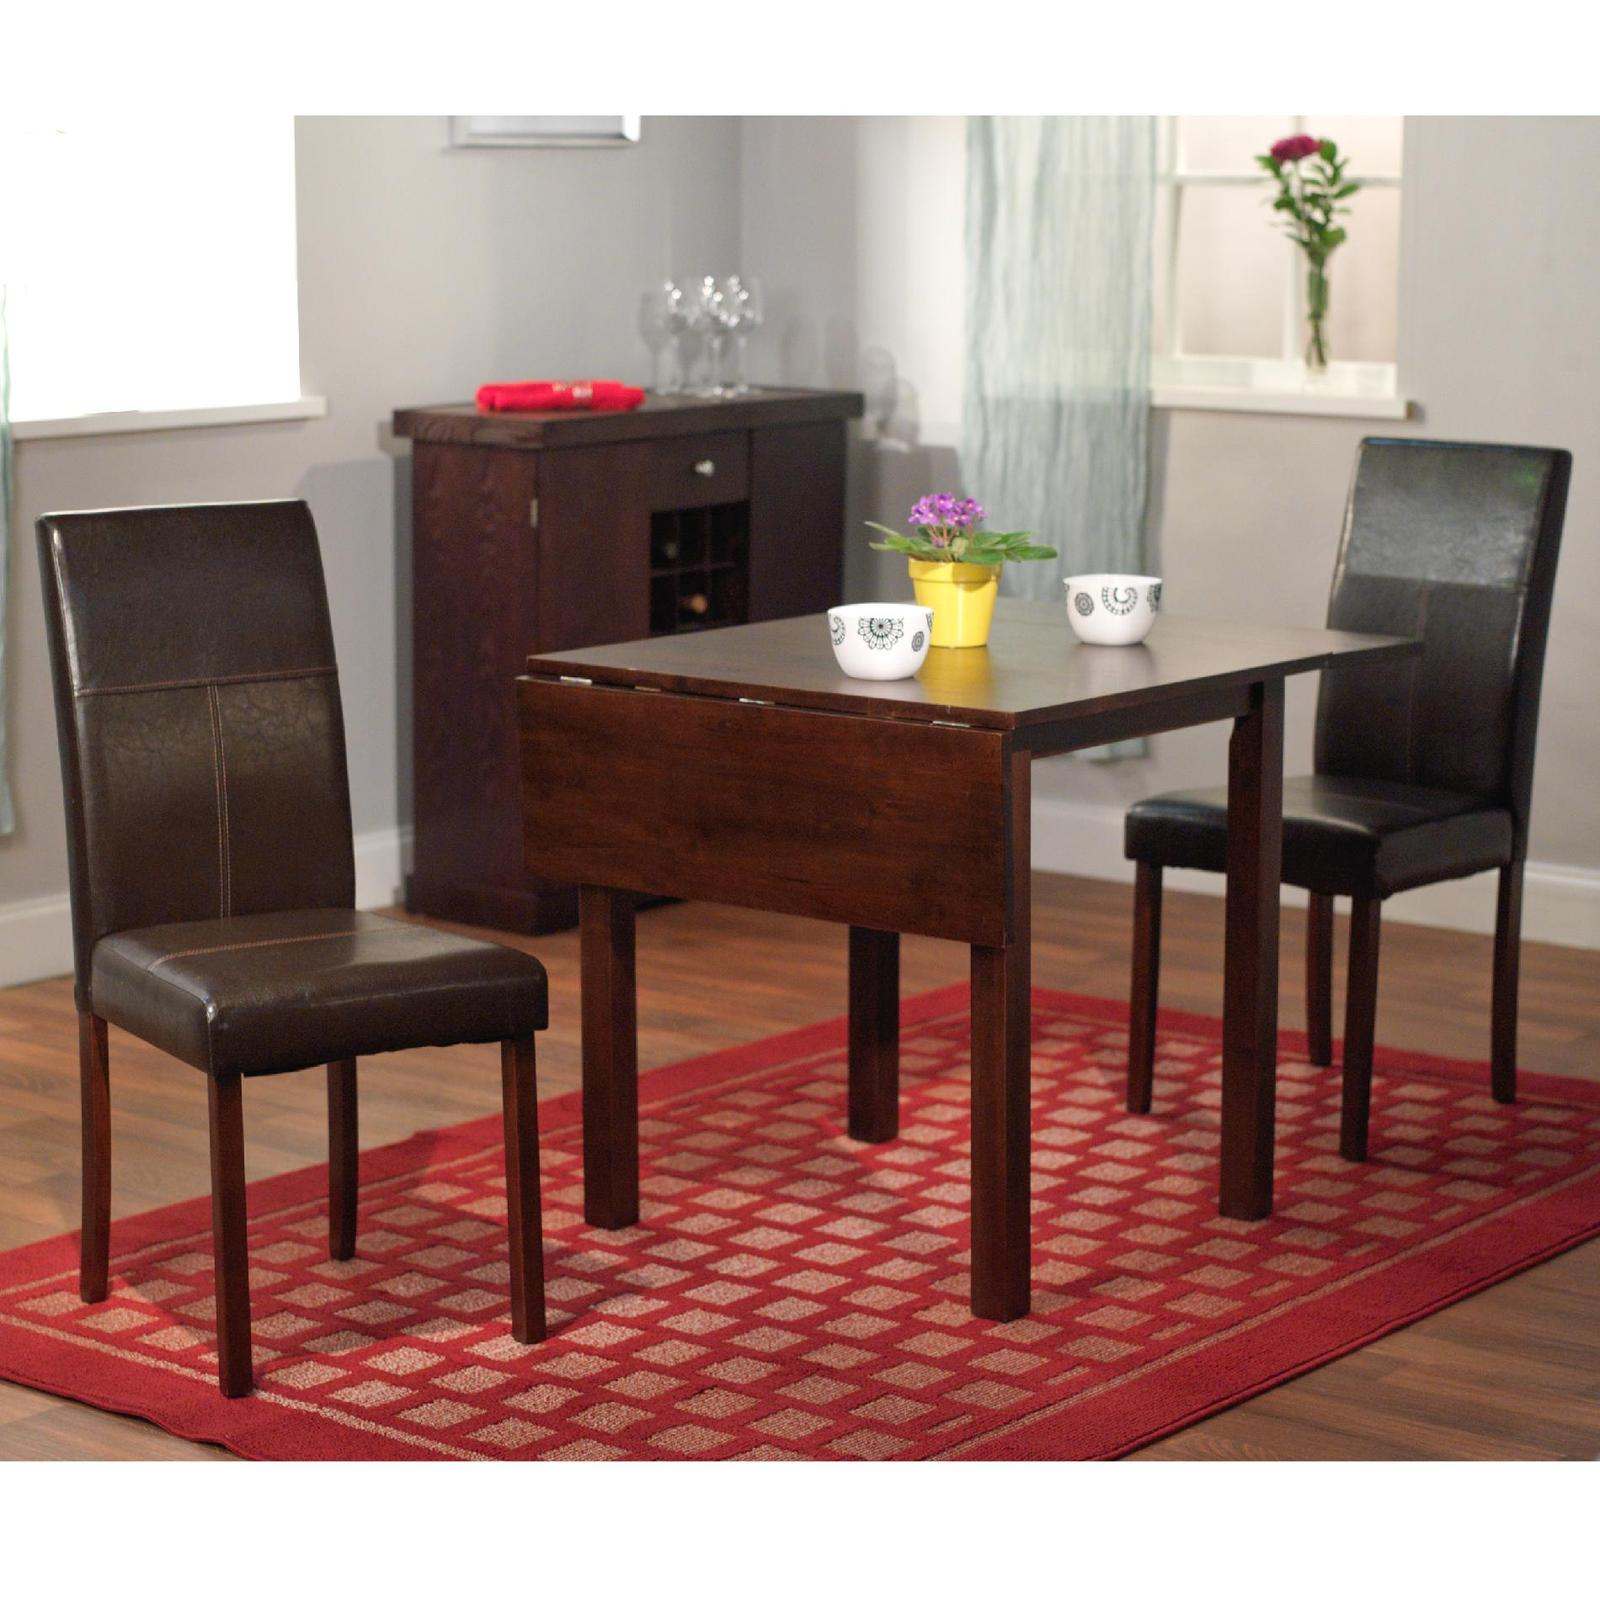 Dining room set wooden furniture 3 piece drop leaf table for 3 leaf dining room tables